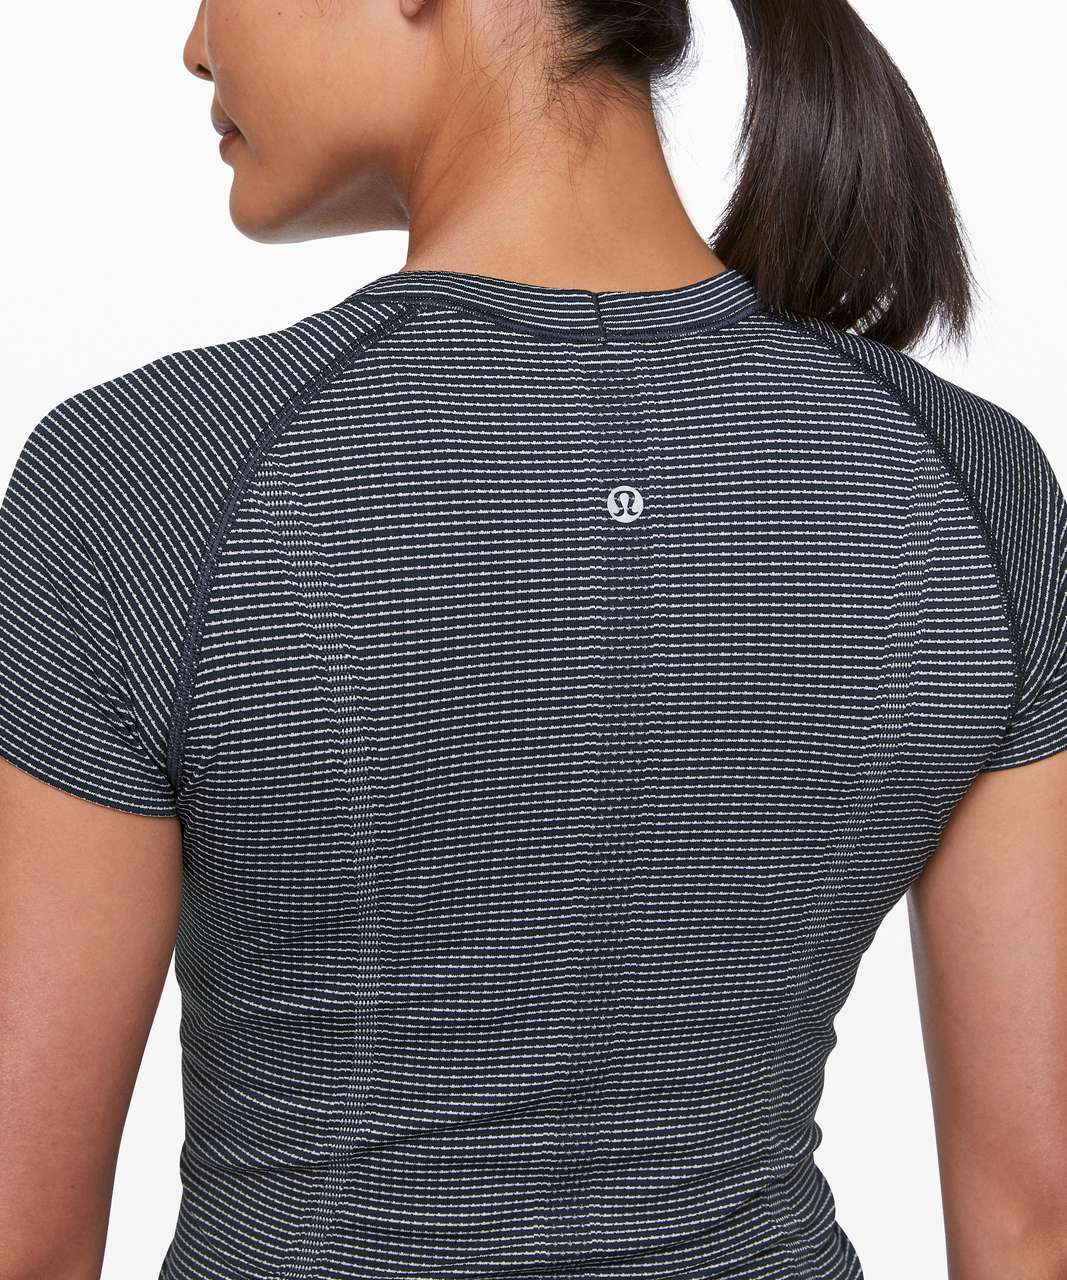 Lululemon Swiftly Tech Short Sleeve Crew - True Navy / White